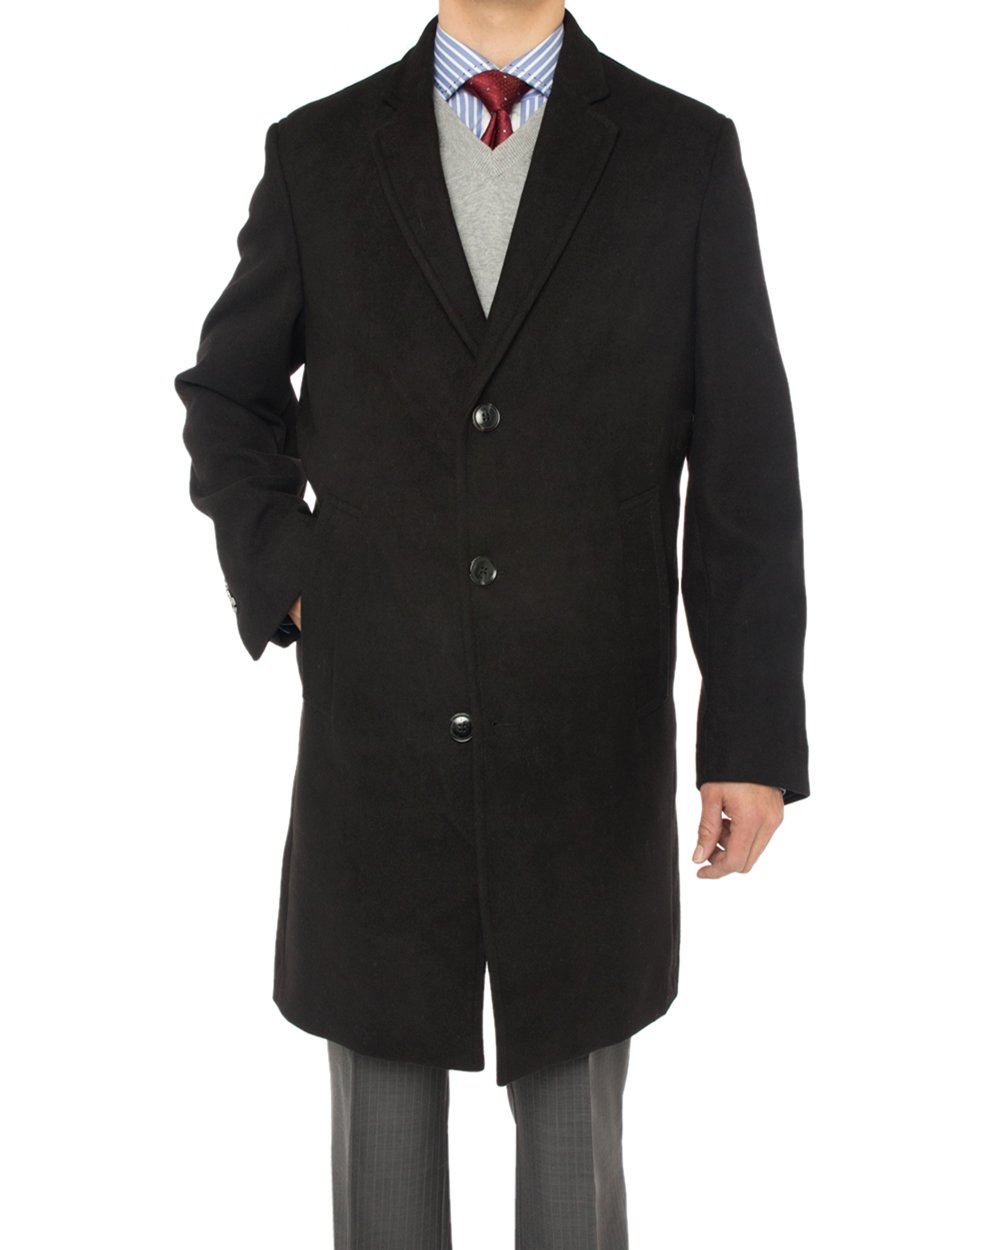 Luciano Natazzi Men's Trend Fit Overcoat Wool Blend Stretch Topcoat (38 US - 48 EU, Black) by Luciano Natazzi